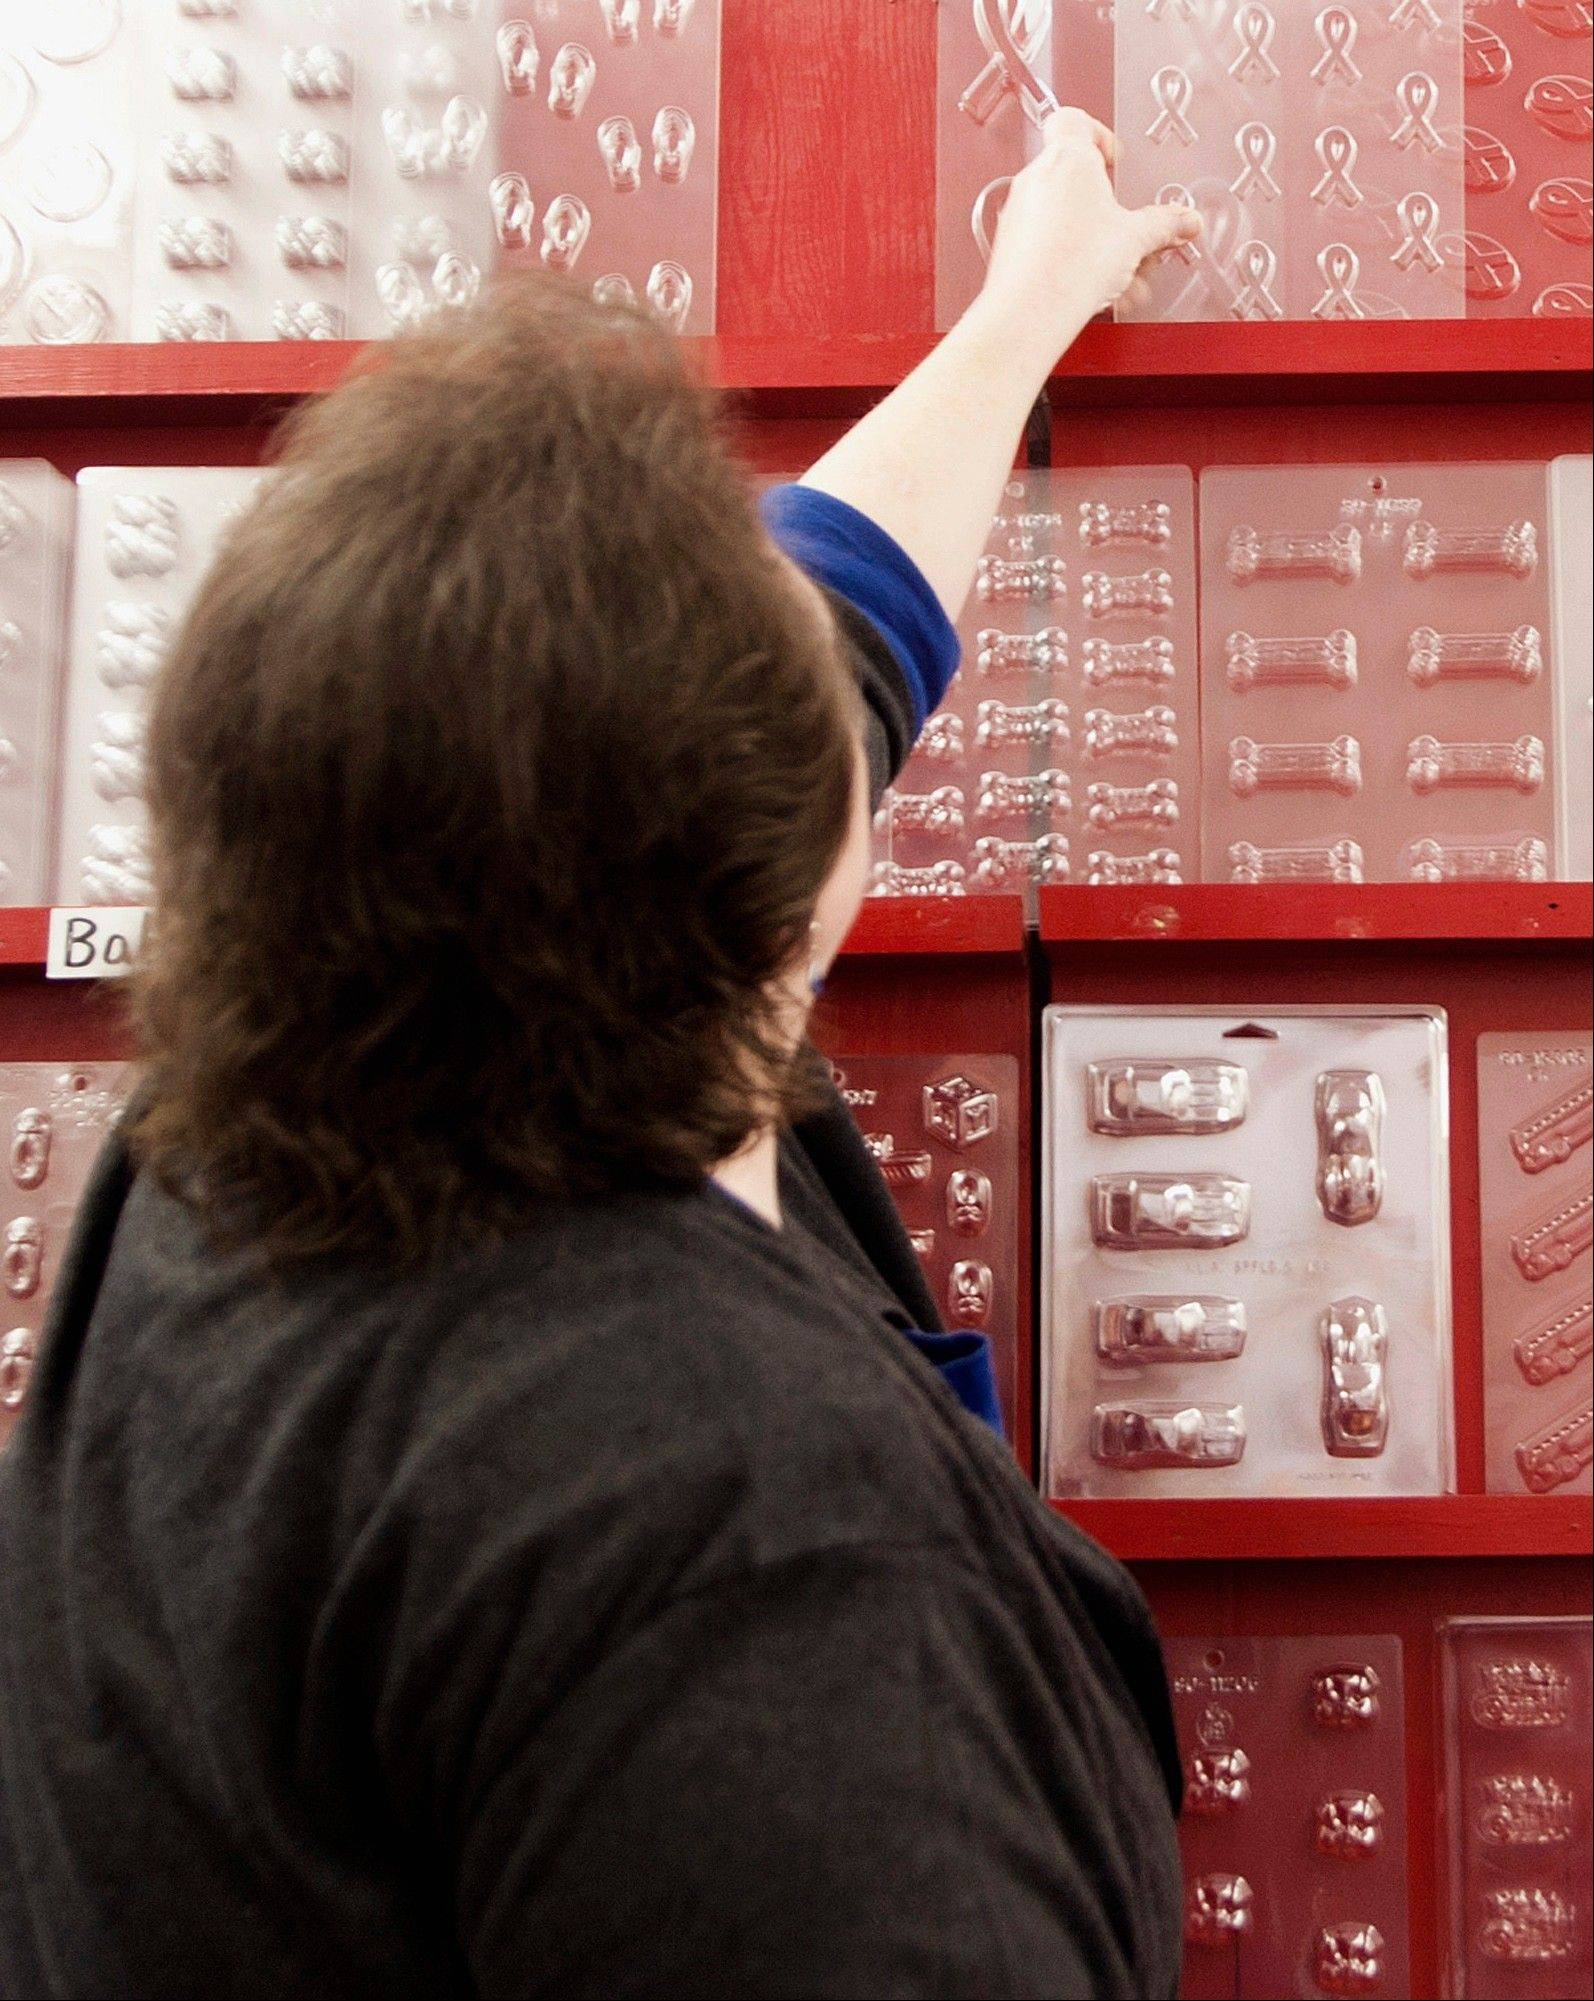 Lisa McCormack sorts through various candy molds at the Decorator Grocery in Peoria.